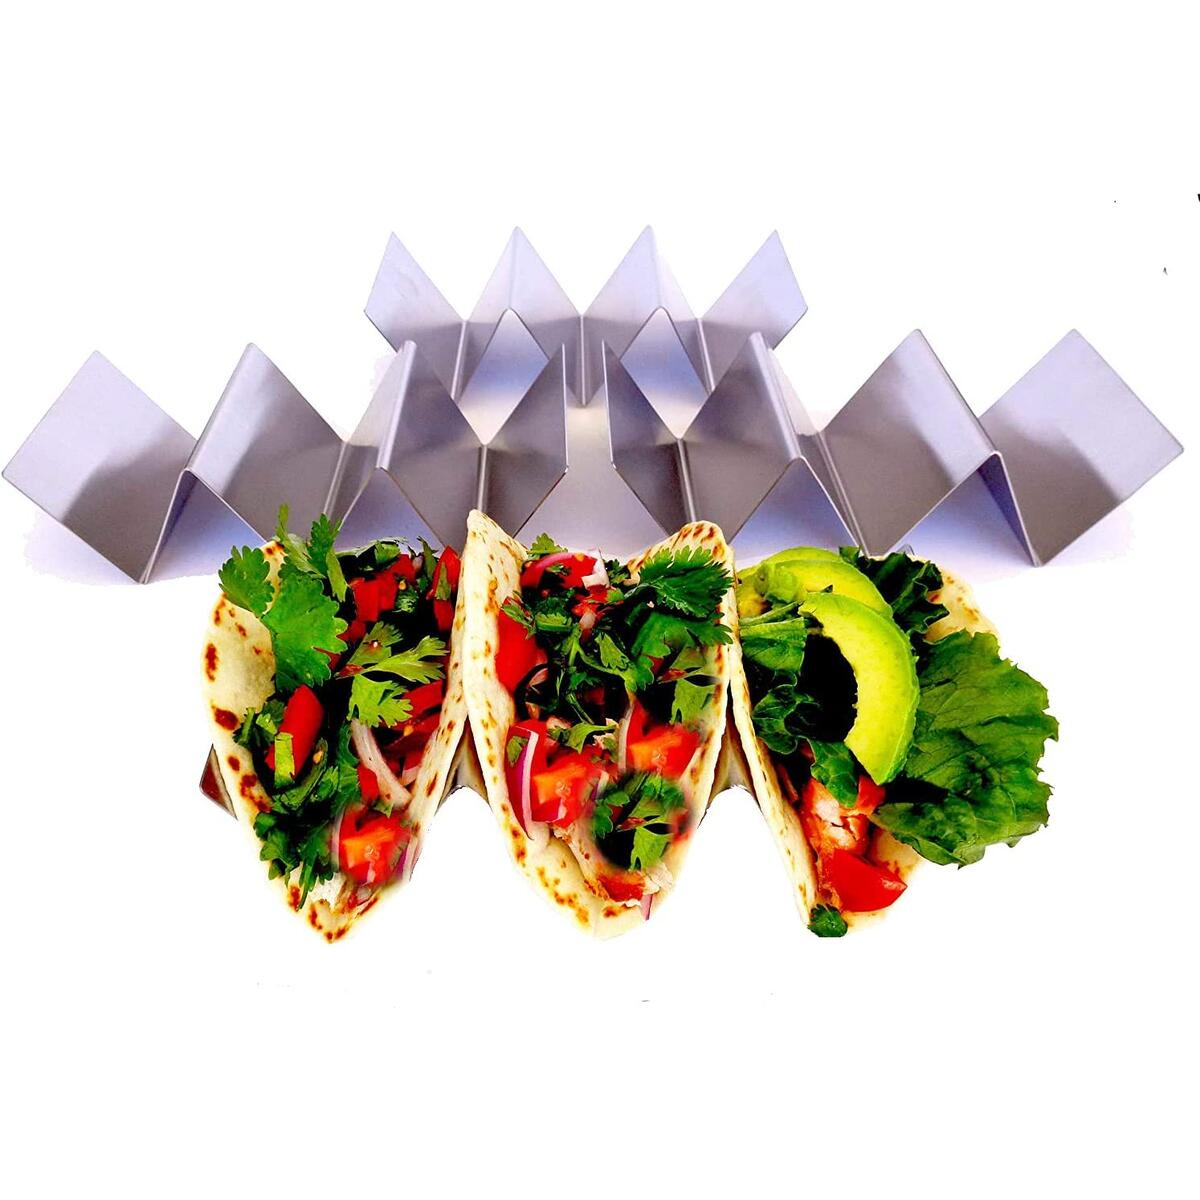 Taco Holder - Taco Holders, Stainless Steel with a Free Recipe Booklet - Taco Trays - Taco Stand Up Holder - Taco Stand - Taco Plates - Holds 3 Tacos - Dishwasher, Oven and Grill Safe